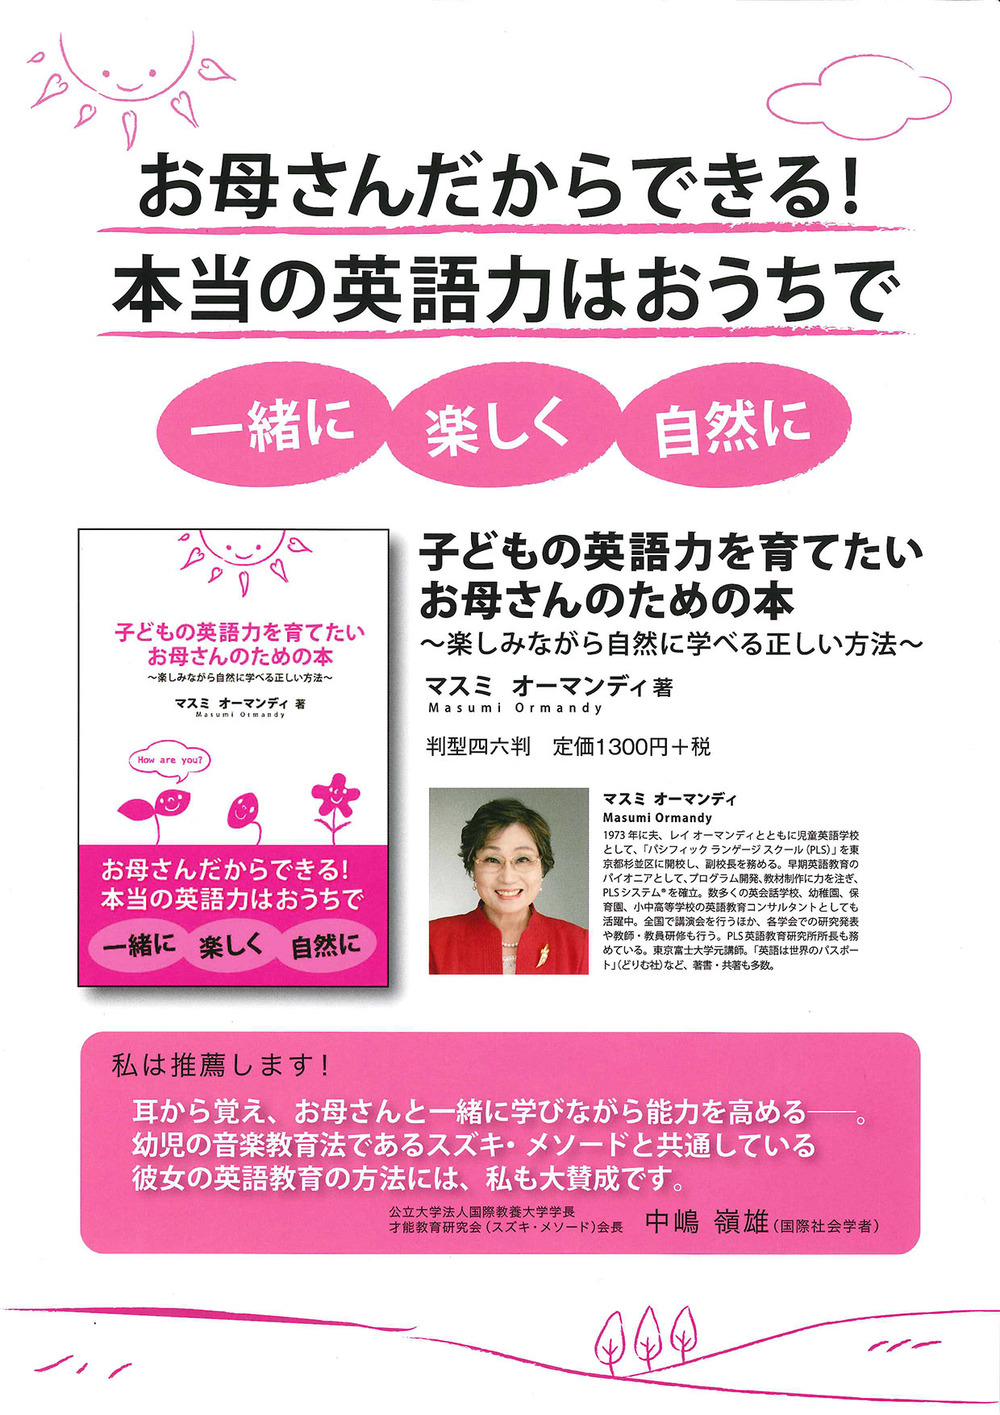 Kodomo no Eigoryoku o sodatetai okaasan no tame no hon - A BOOK FOR MOTHERS WISHING TO IMPROVE THEIR CHILDREN'S ENGLISH SKILLS   Publisher: ASPECT Inc.